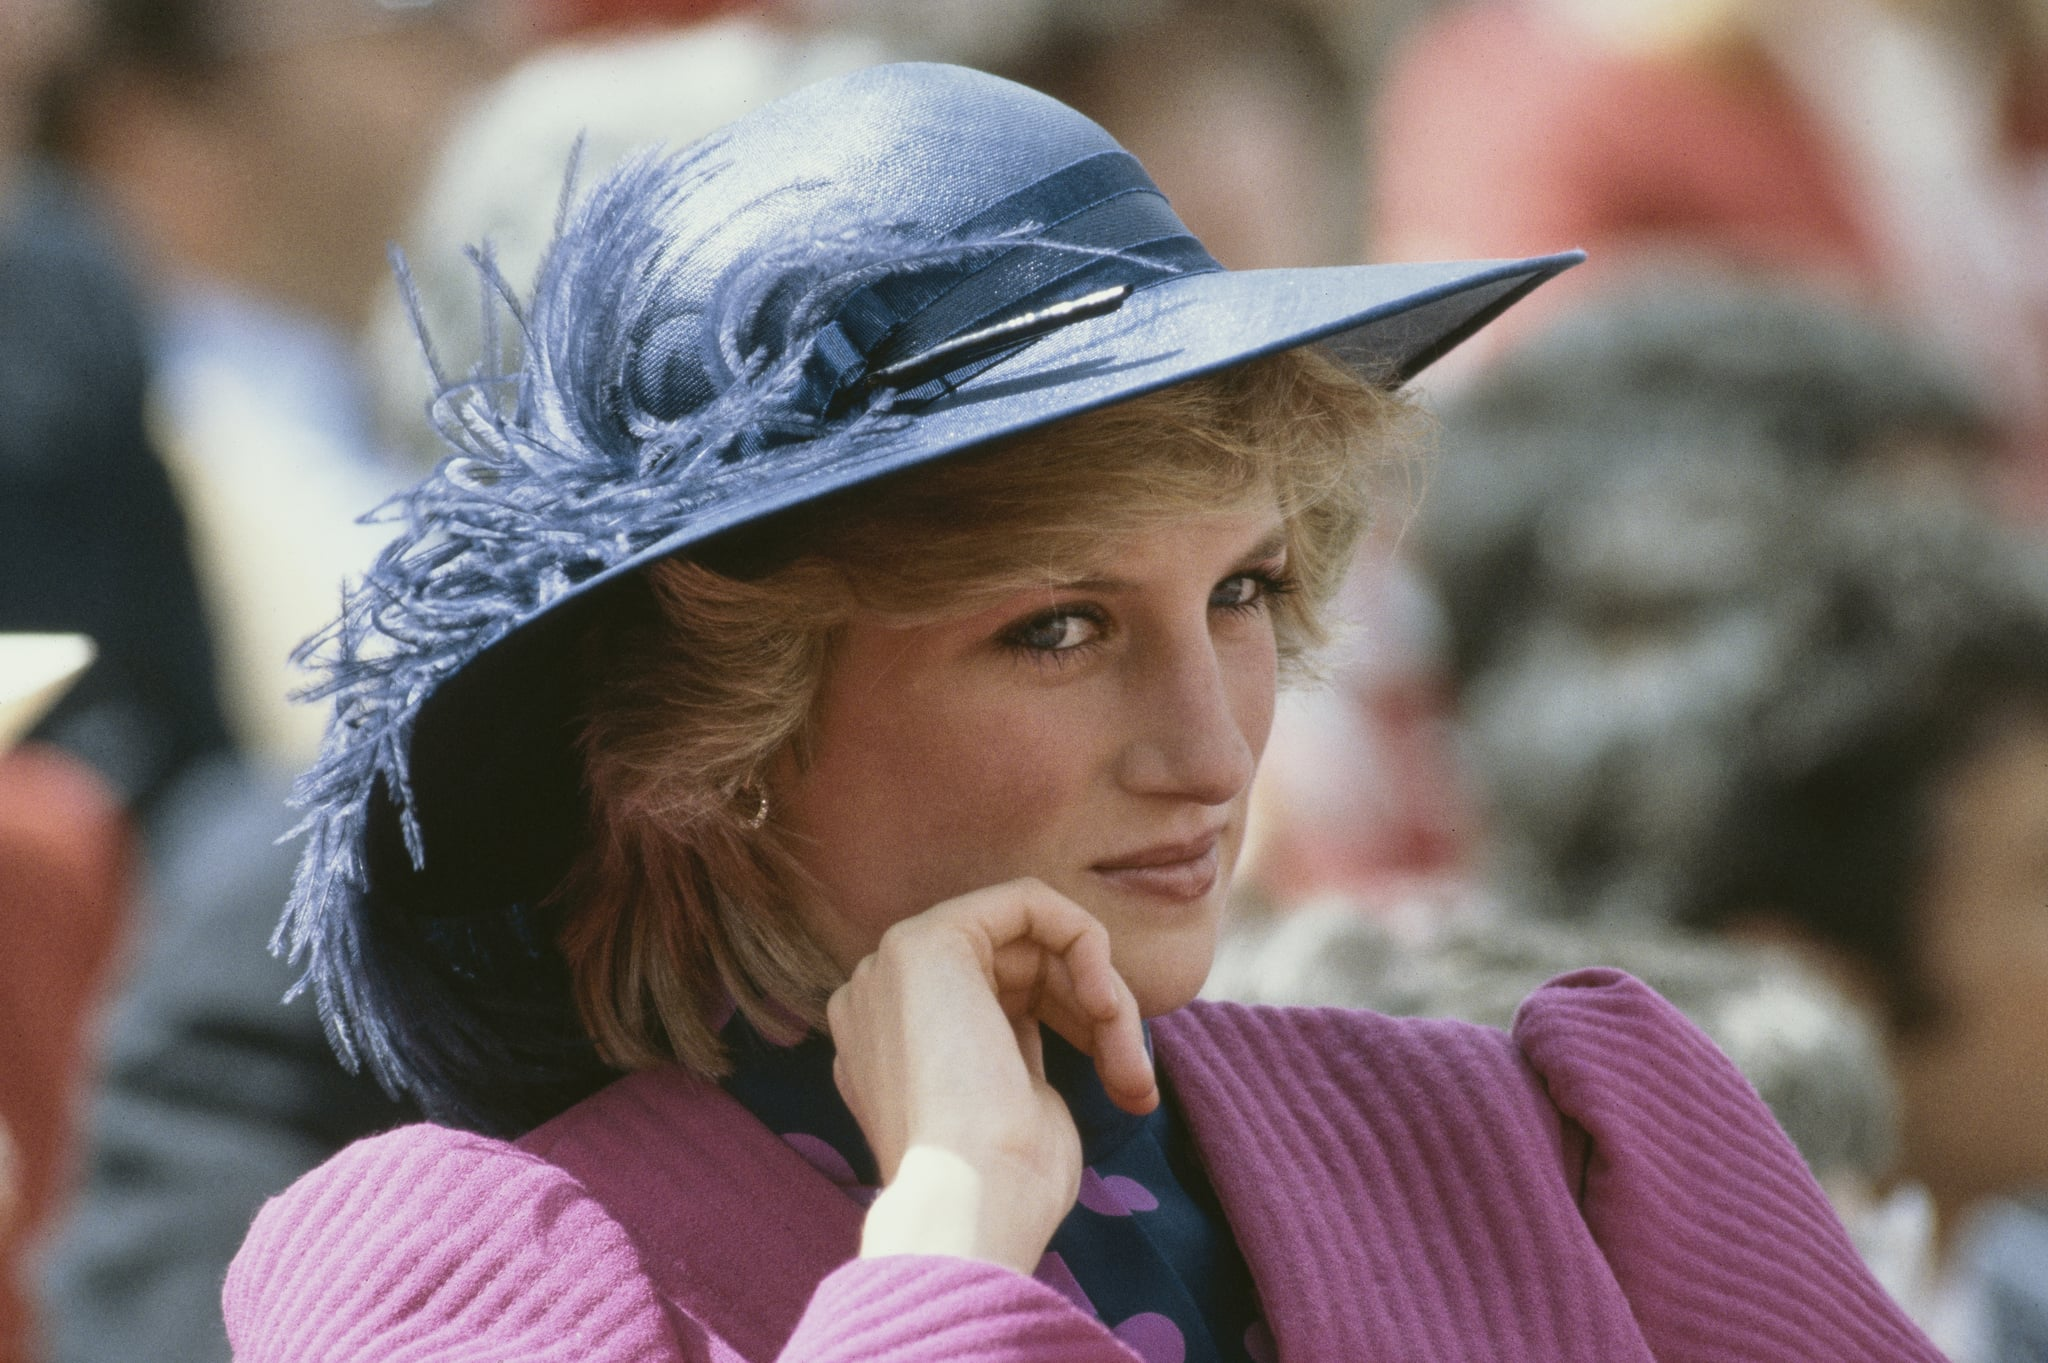 Diana, Princess of Wales  (1961 - 1997) attends the University games on her birthday in Canada, 1st July 1983.  (Photo by Tim Graham Photo Library via Getty Images)